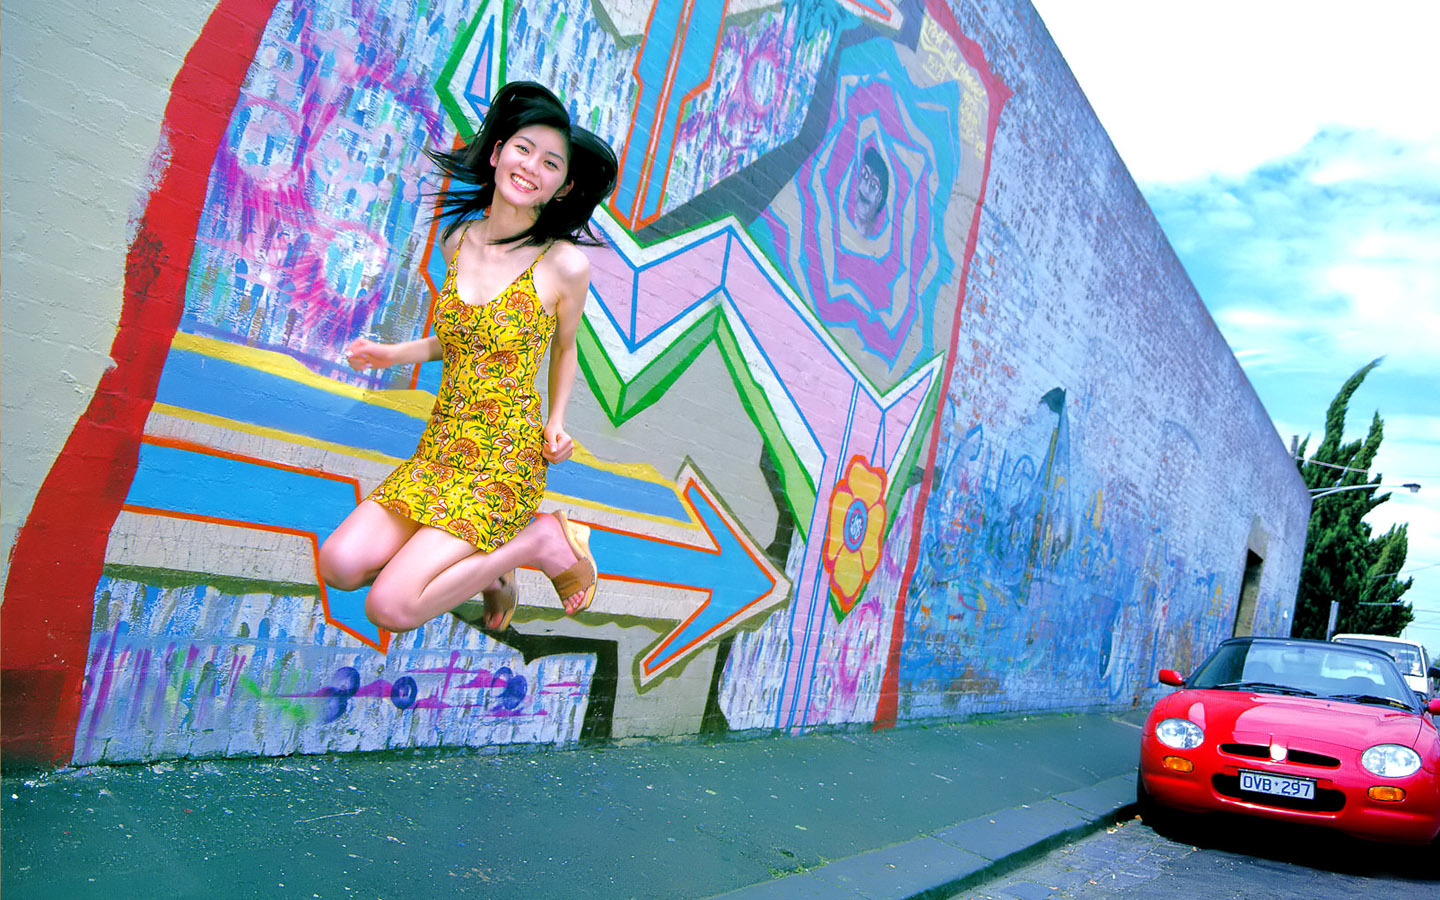 asian girl jumping sidewalk HD Wallpaper